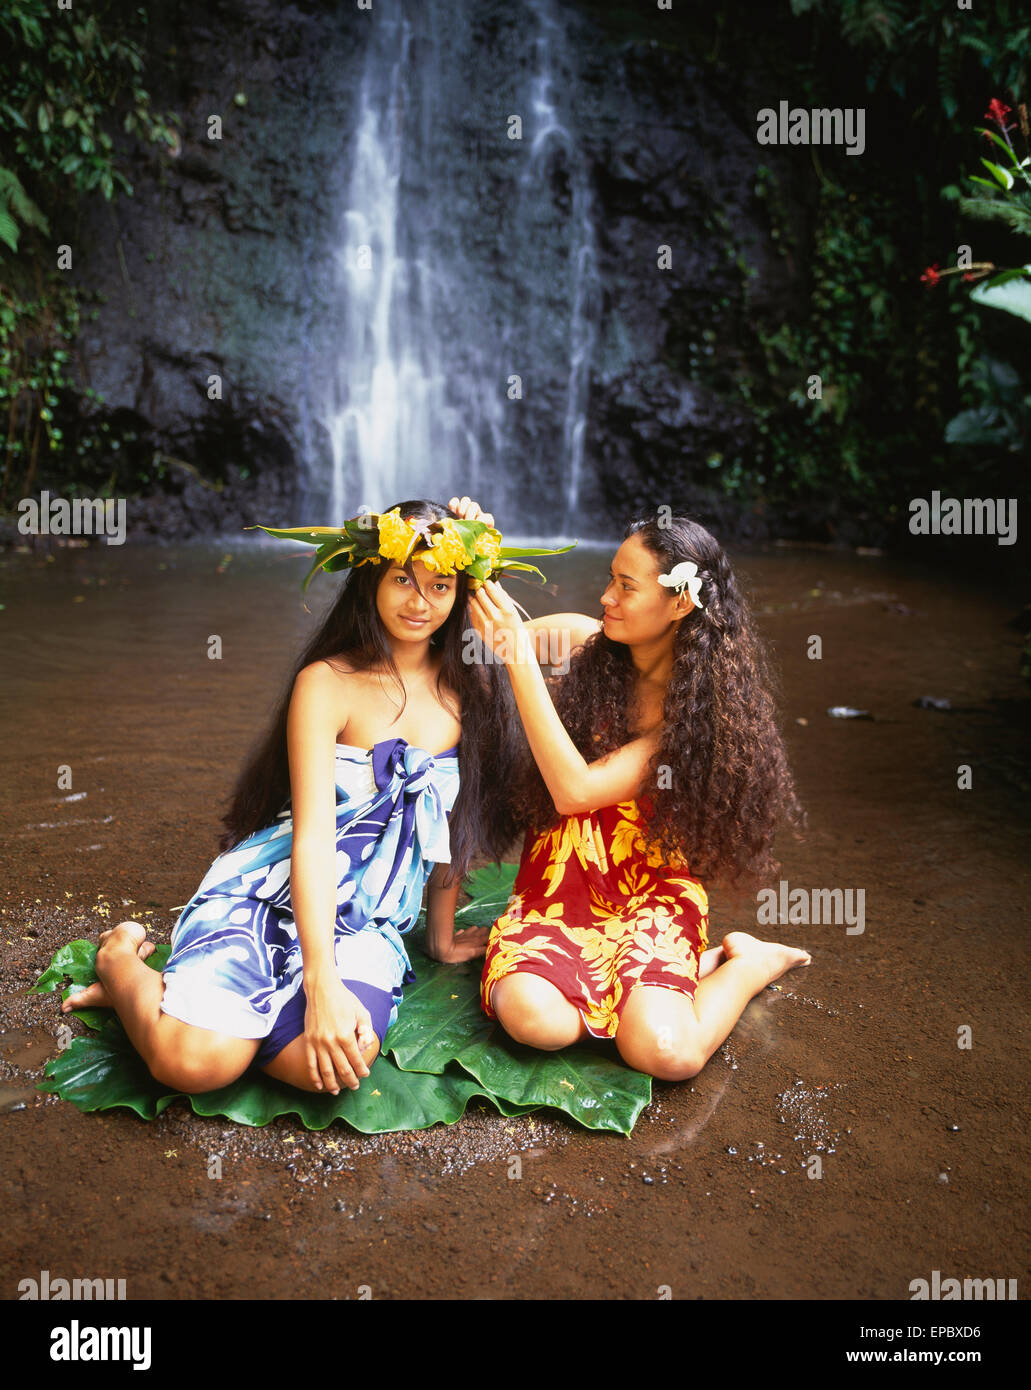 Tahitian women bathing by a waterfall tahiti stock photo for Bathing images